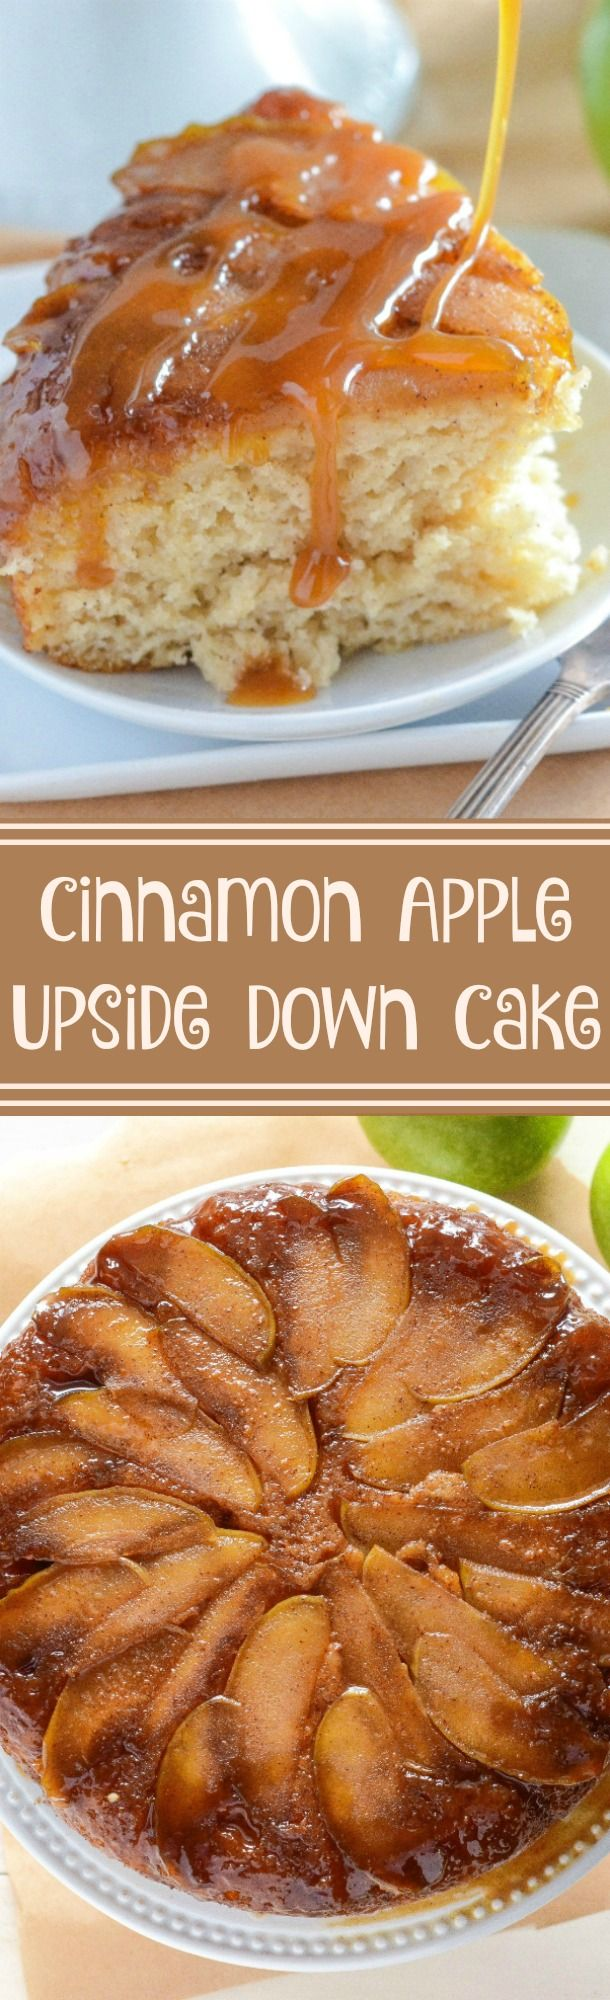 Apple Upside Down Cake! Spiced brown sugar apples with a spiced sour cream cake.